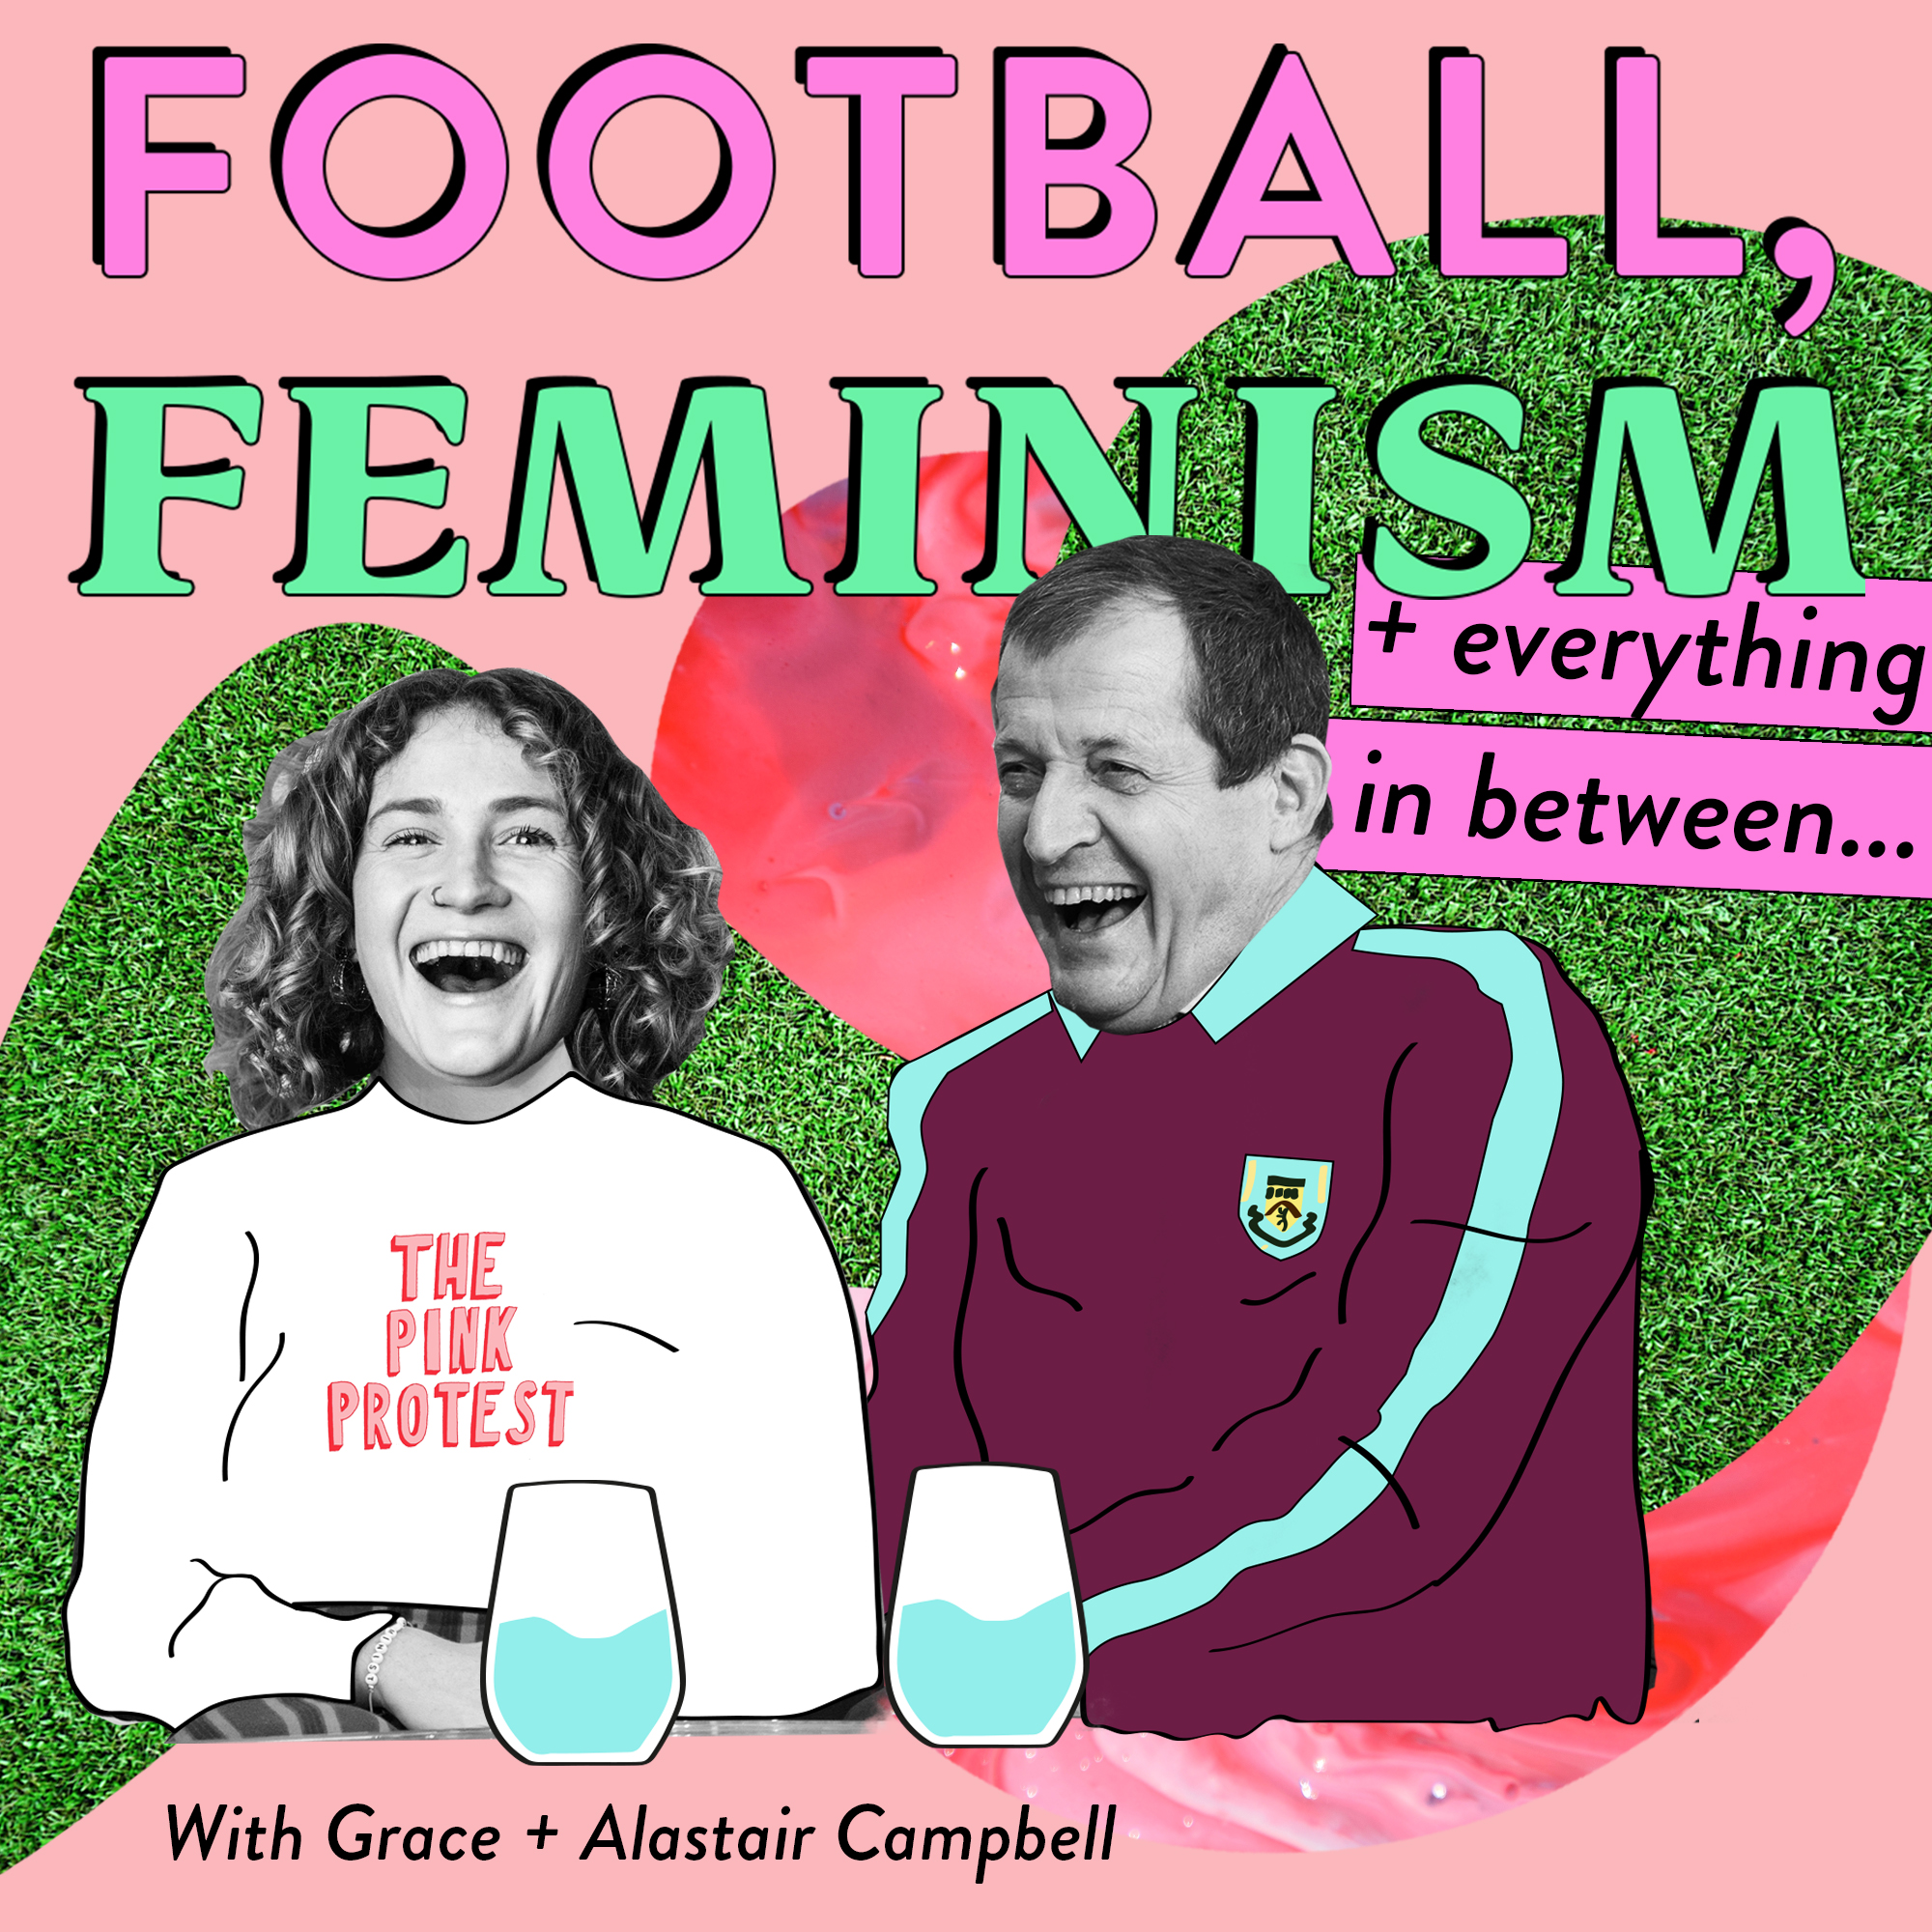 About the podcast - Me and my Dad,  Alastair Campbell (I think he's a writer?! never asked…) have recently entered the world of podcasts, with our own invention; Football, Feminism, and Everything In Between. Football being his obsession, and feminism mine. In each episode we invite interesting people on to talk about those things and everything in between. We also argue. And I laugh, which he says is too 'loud.' It's loads of fun. My secret hope is that this podcast will help convert more football fans to feminism. Please listen, subscribe, rate  review, and do anything else you want to do like frame the poster and put it on your mantelpiece.Poster designed by Duzi Studios.